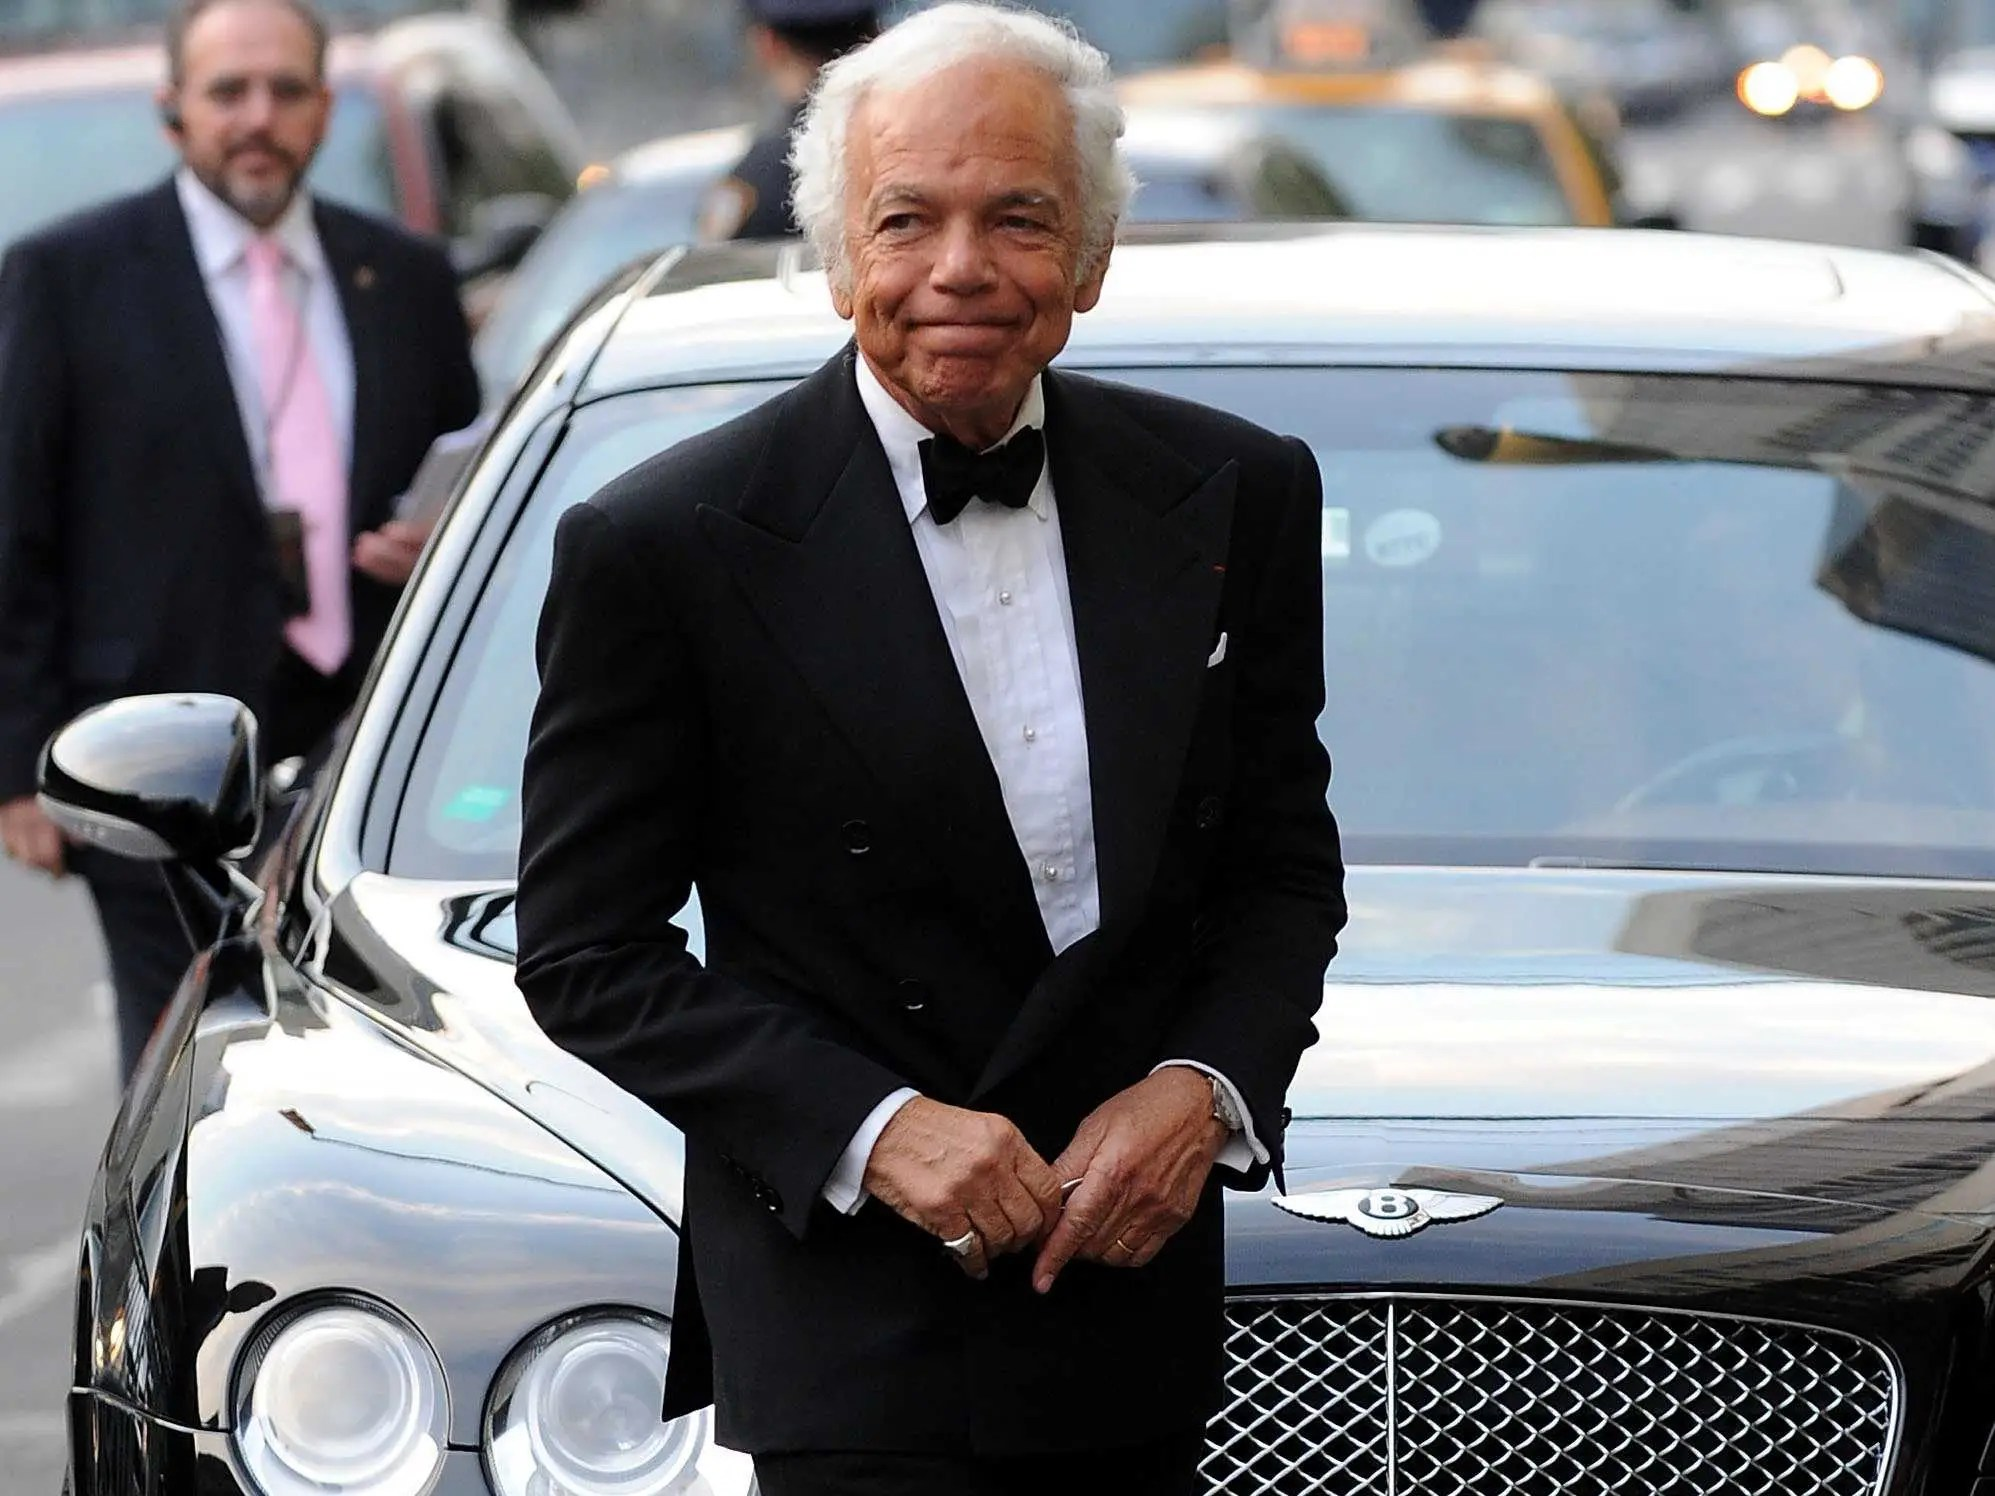 Ralph Lauren was once a clerk at Brooks Brothers dreaming of men's ties.